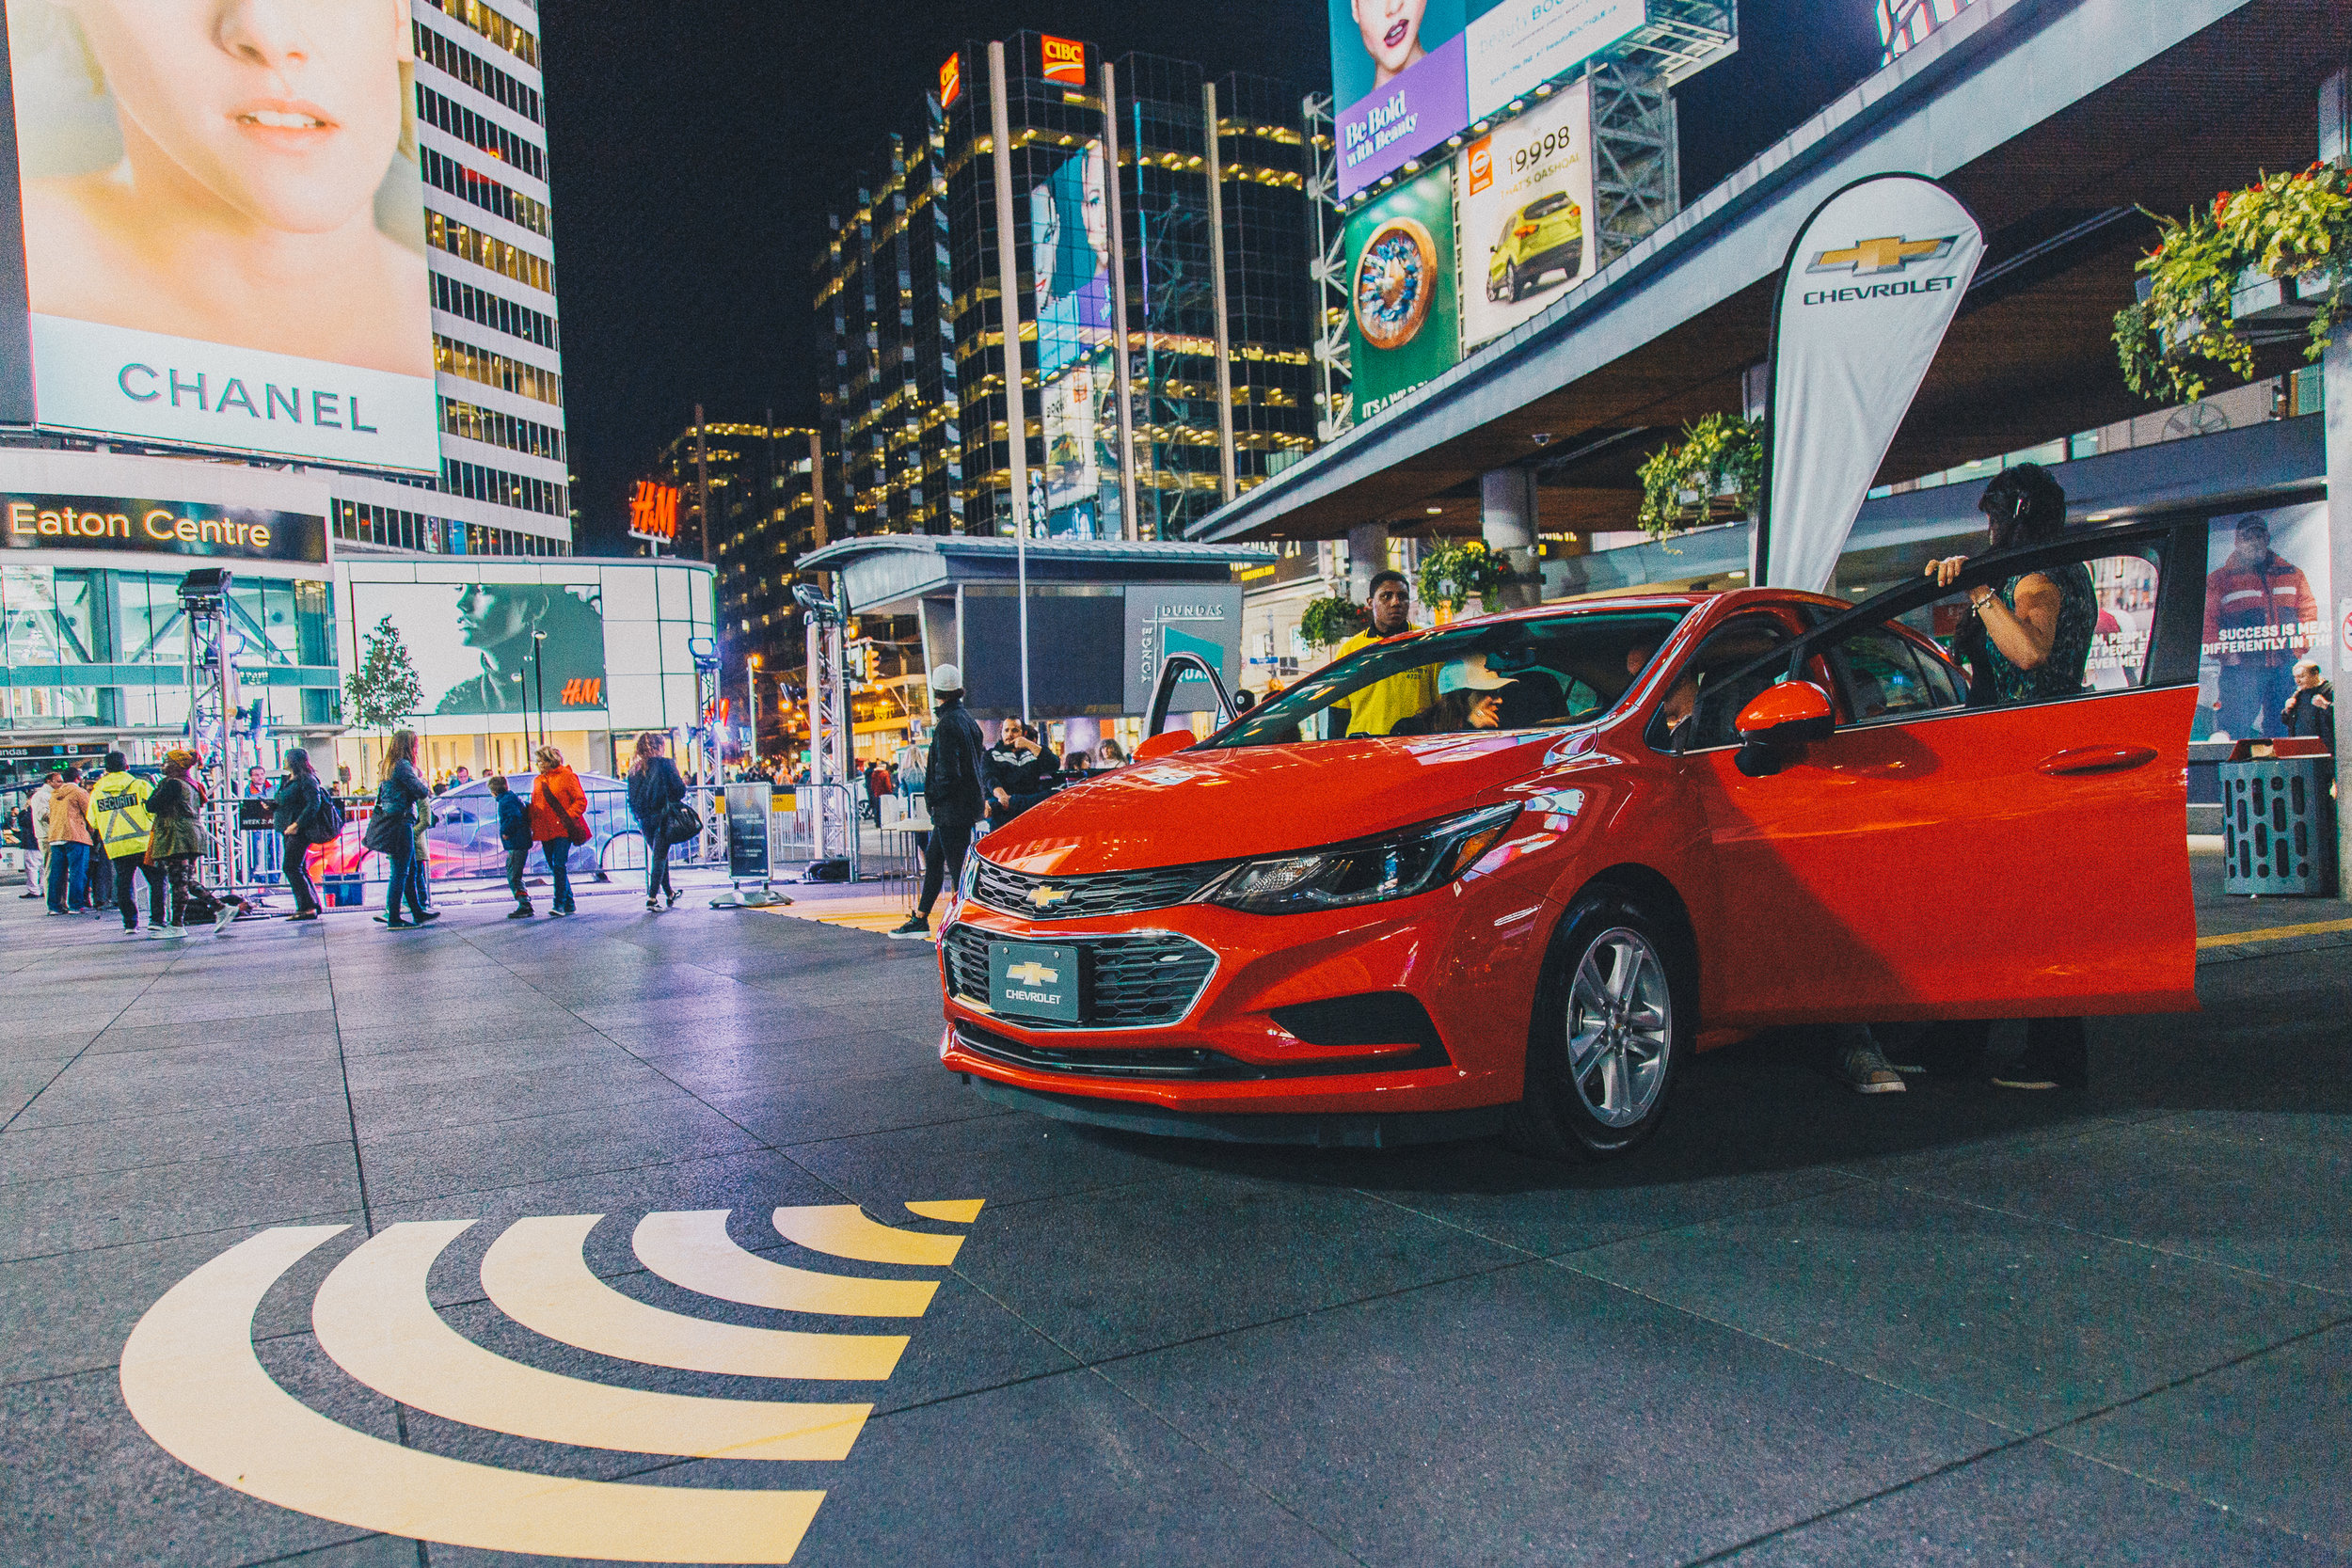 Yonge-Dundas Square is sponsored by Chevrolet